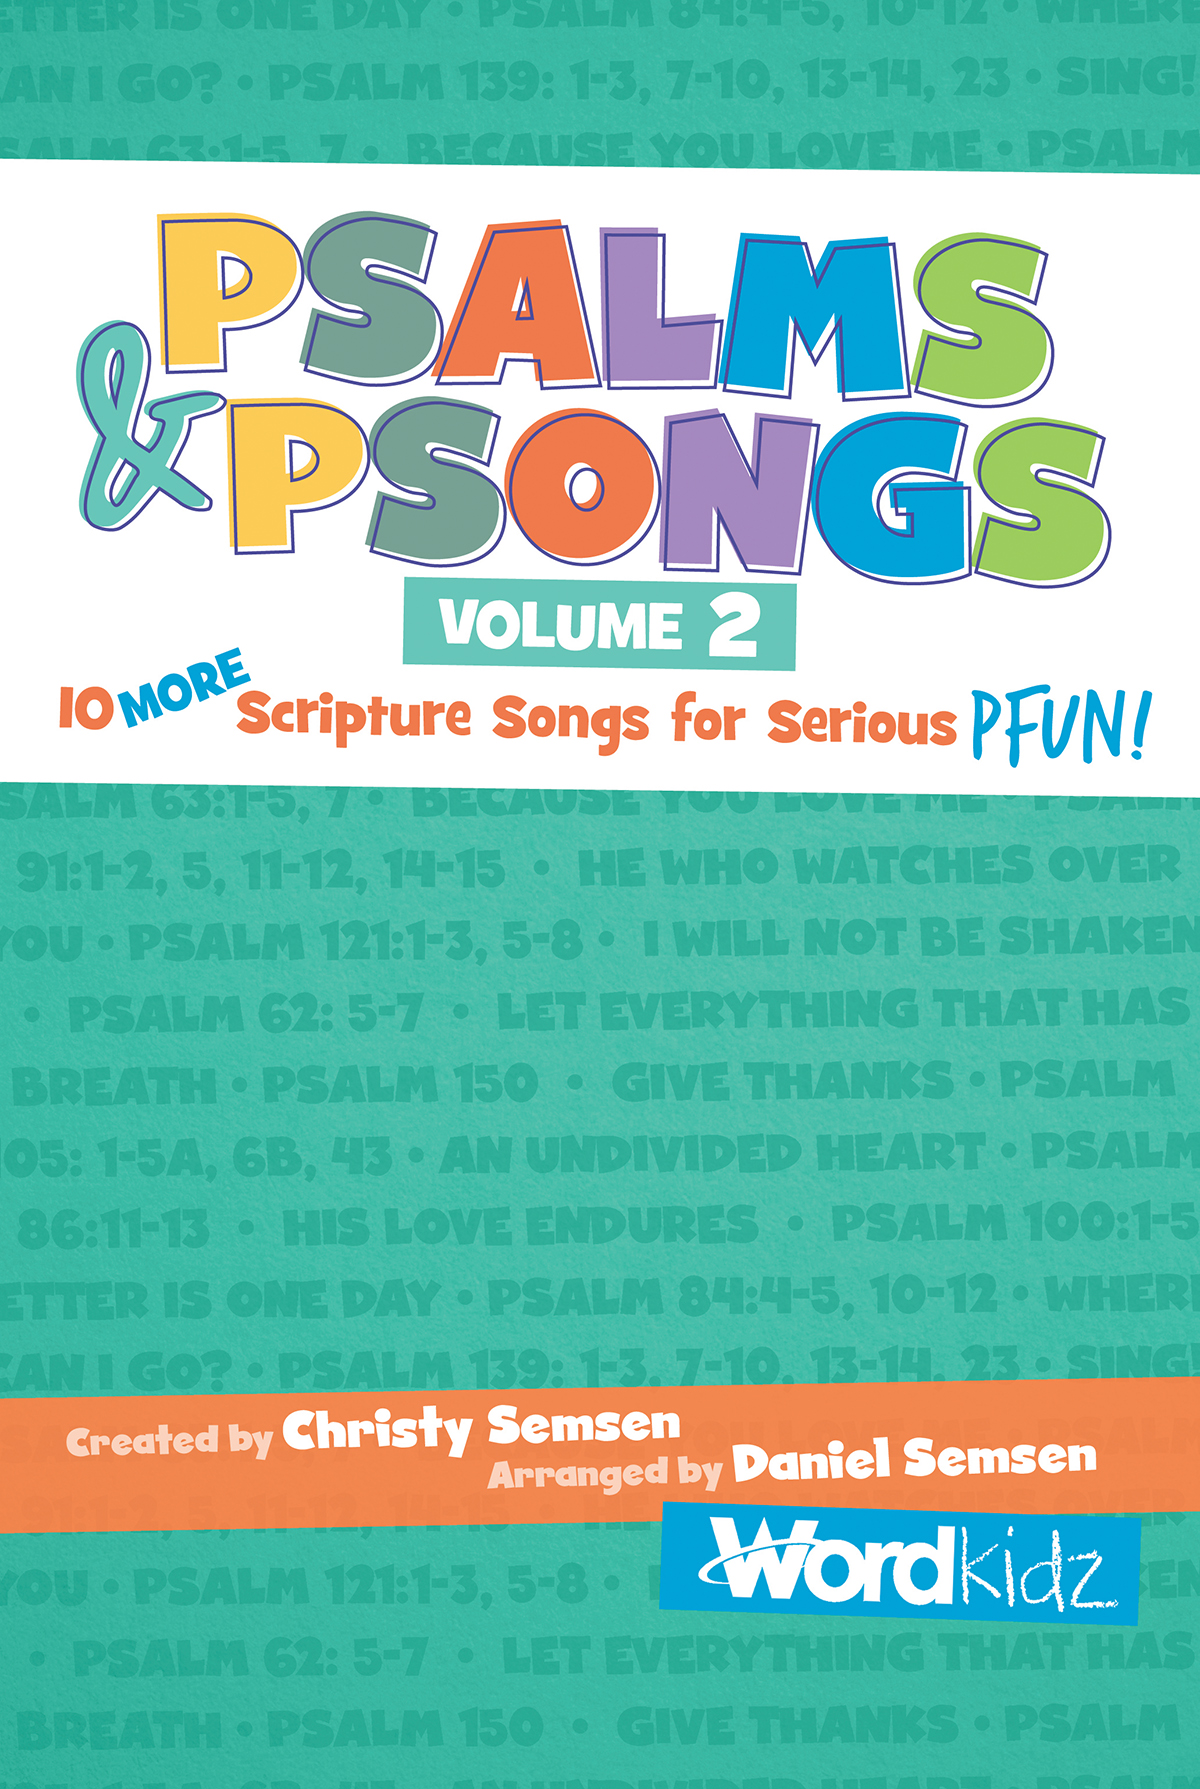 Psalms & Psongs Volume 2.